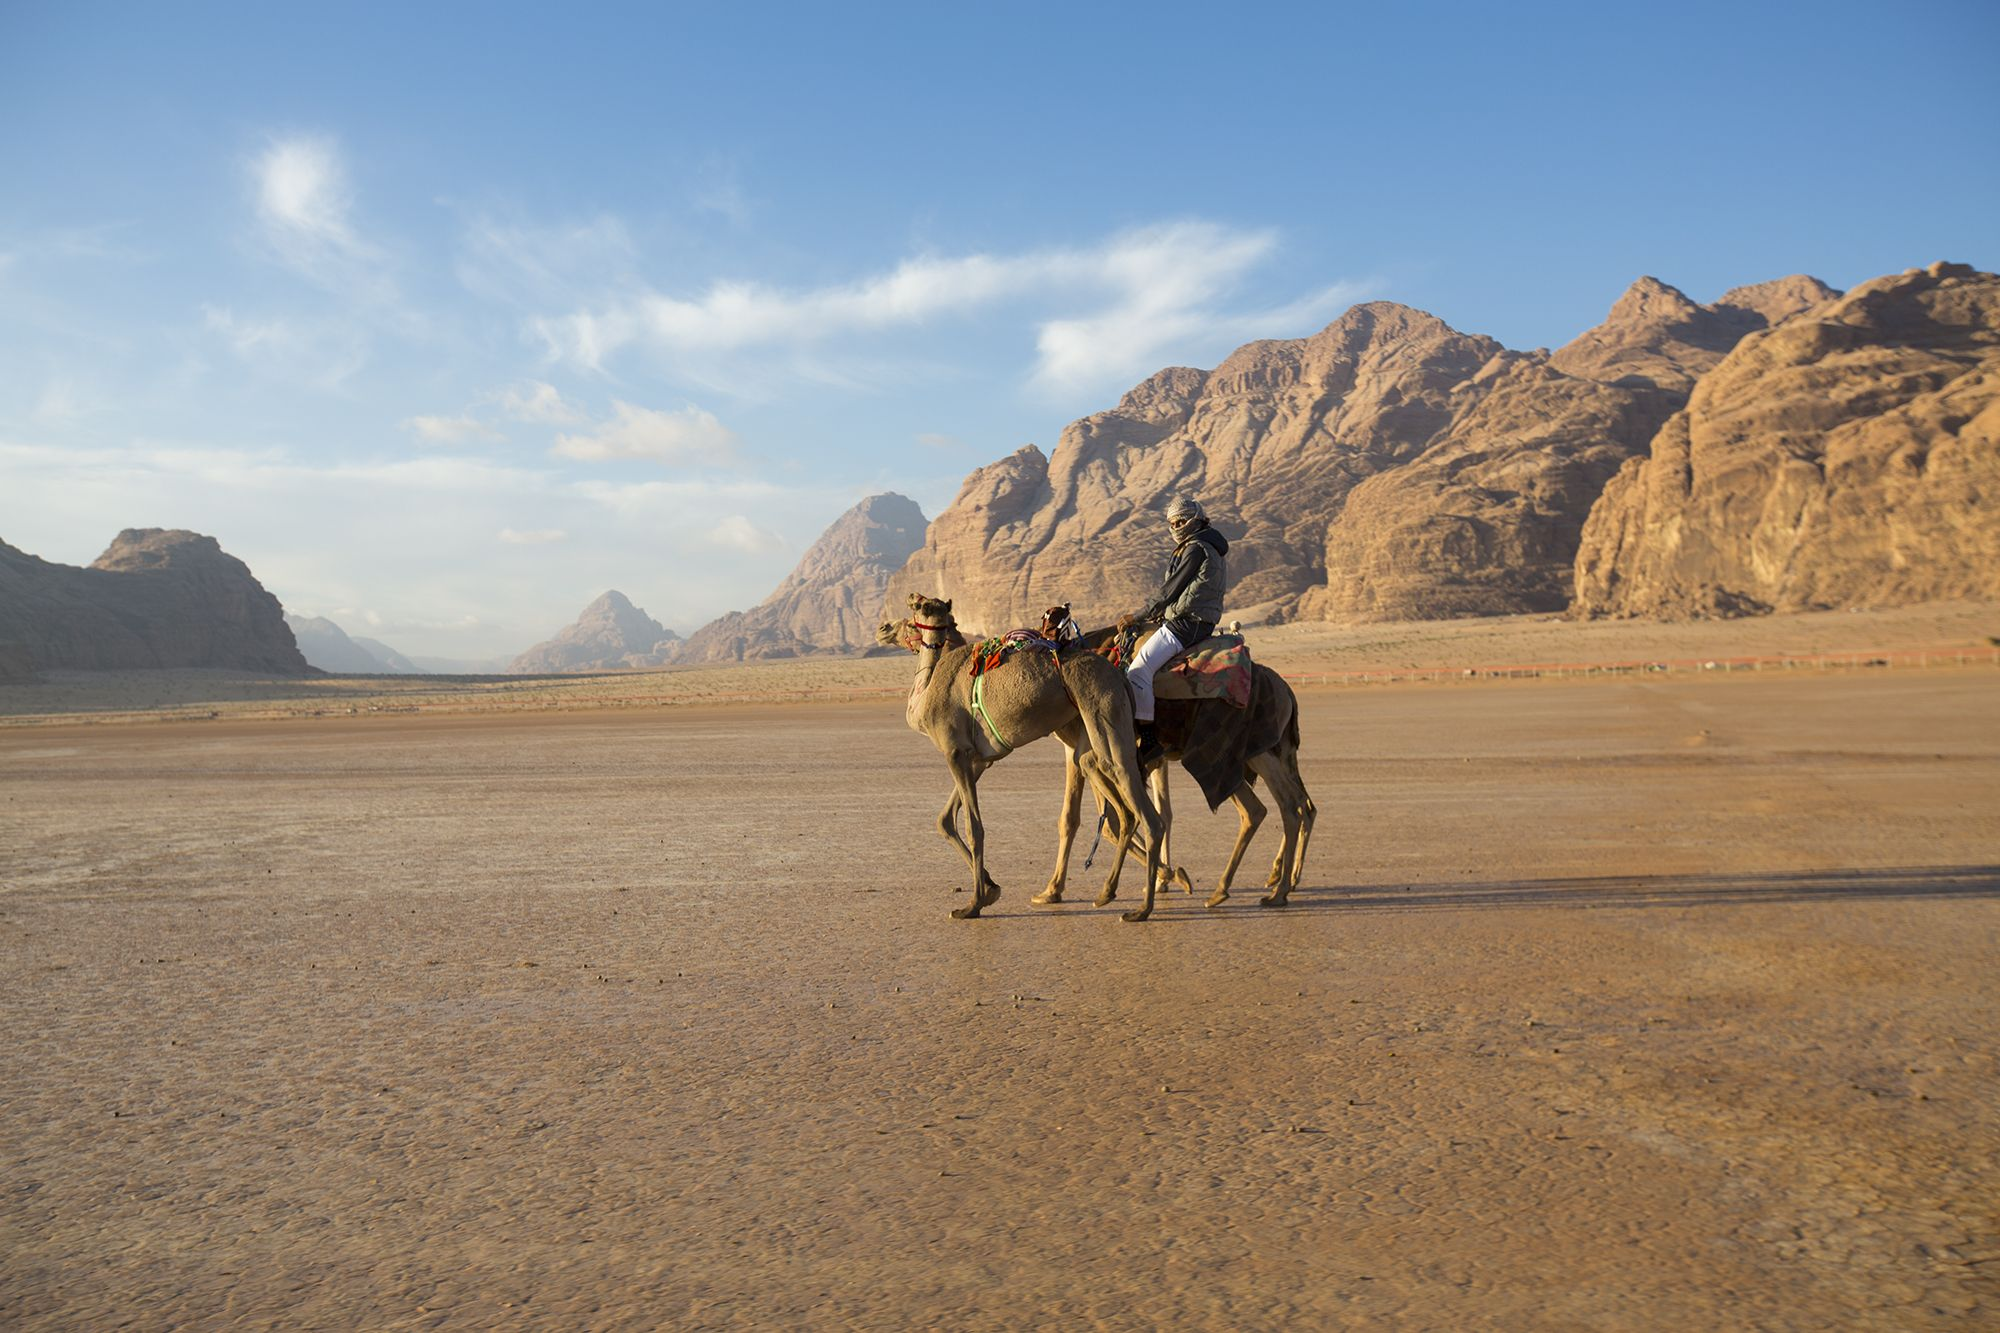 An improbable trip through Jordan reveals that the country has its own way of working things out.